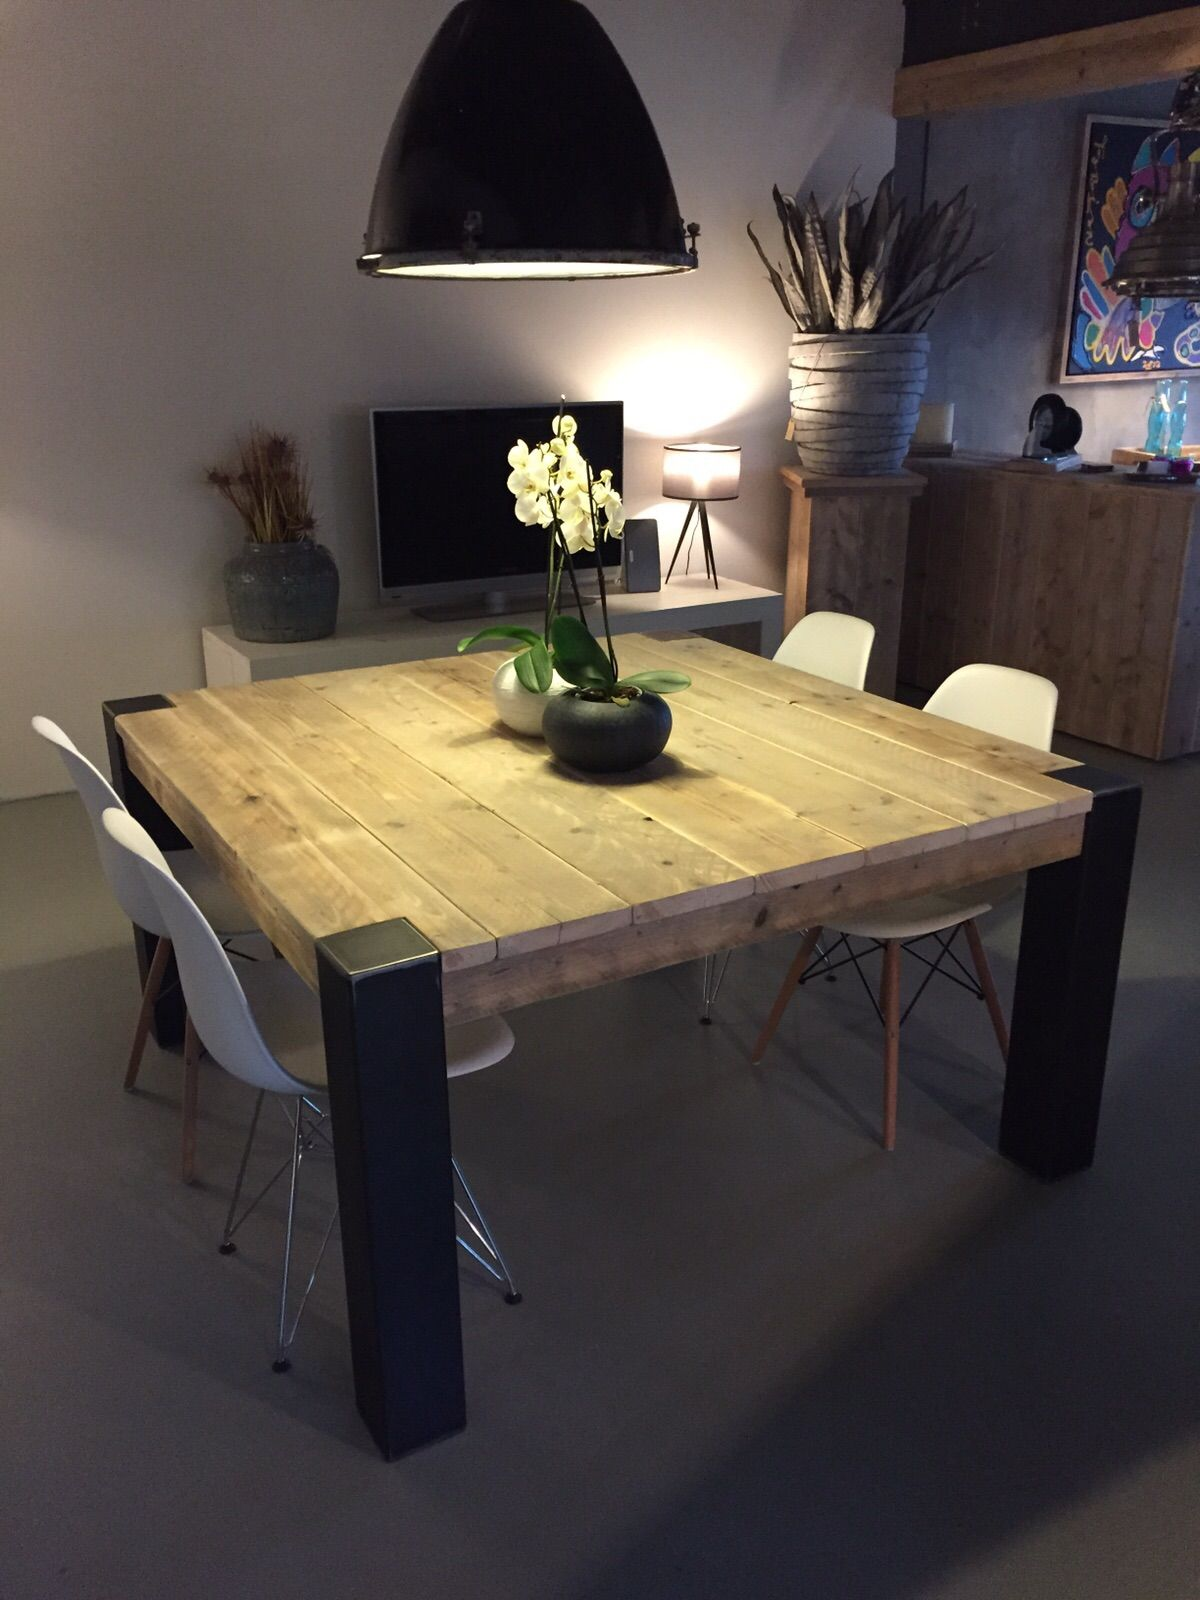 Salle A Manger Table Carree.Table Carree Avec Pieds En Metal Brut En 2019 Tables A